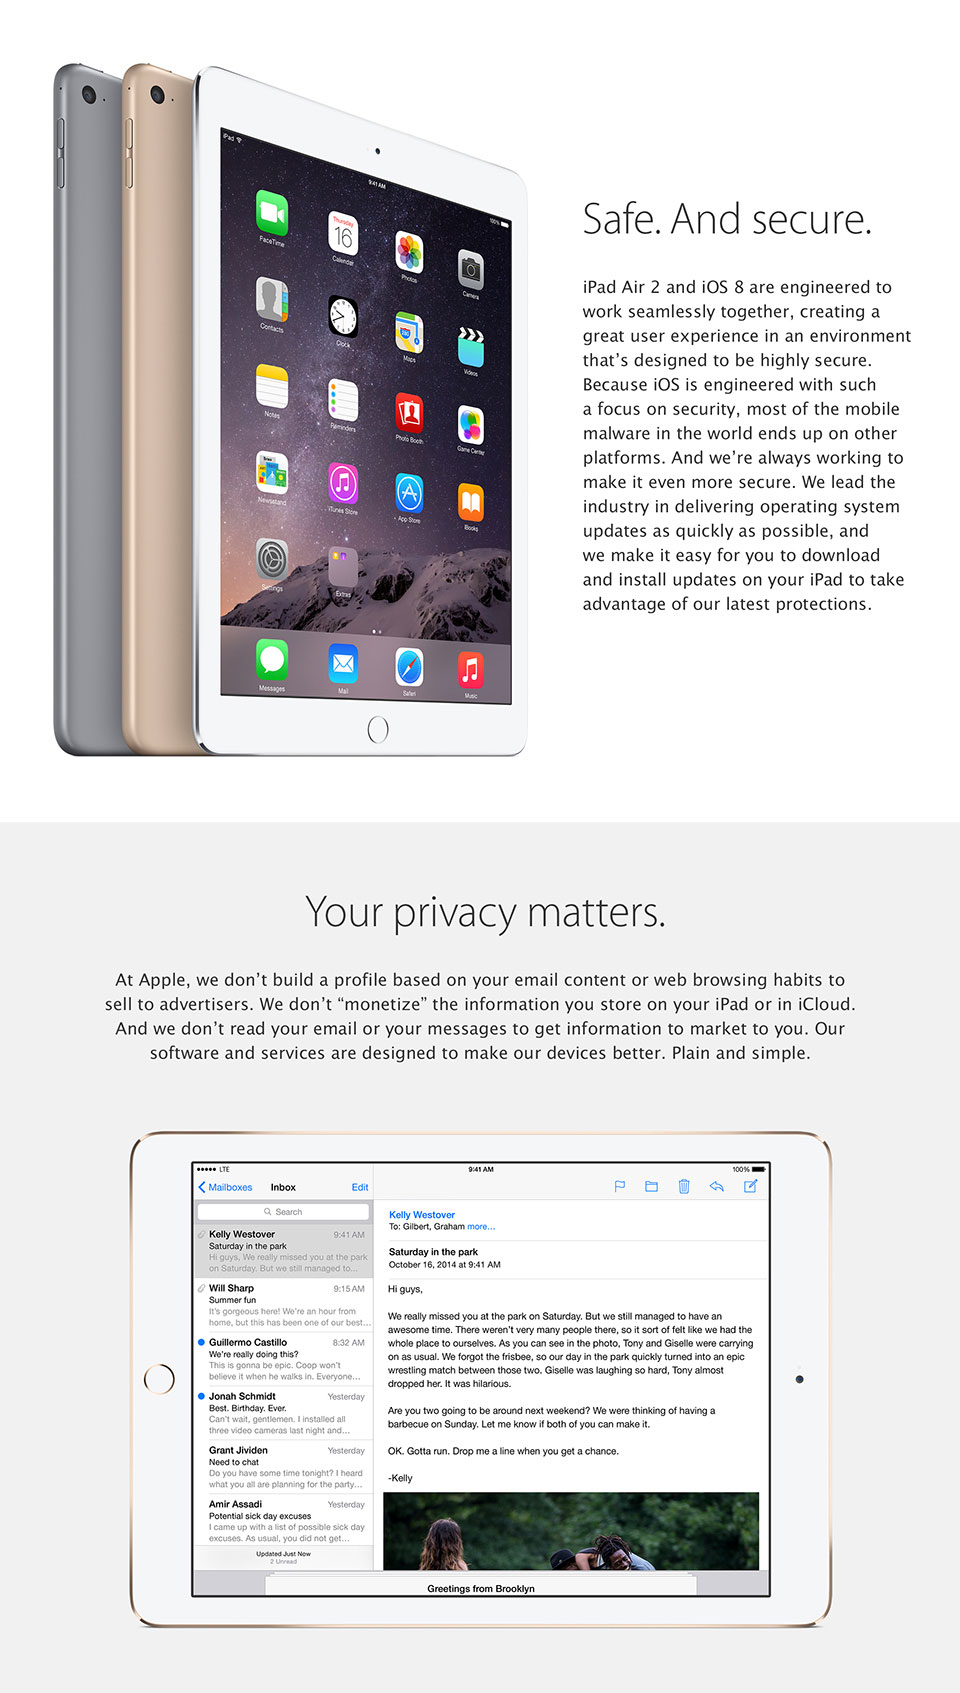 iPad Air 2. Safe and secure. Your privacy matters.